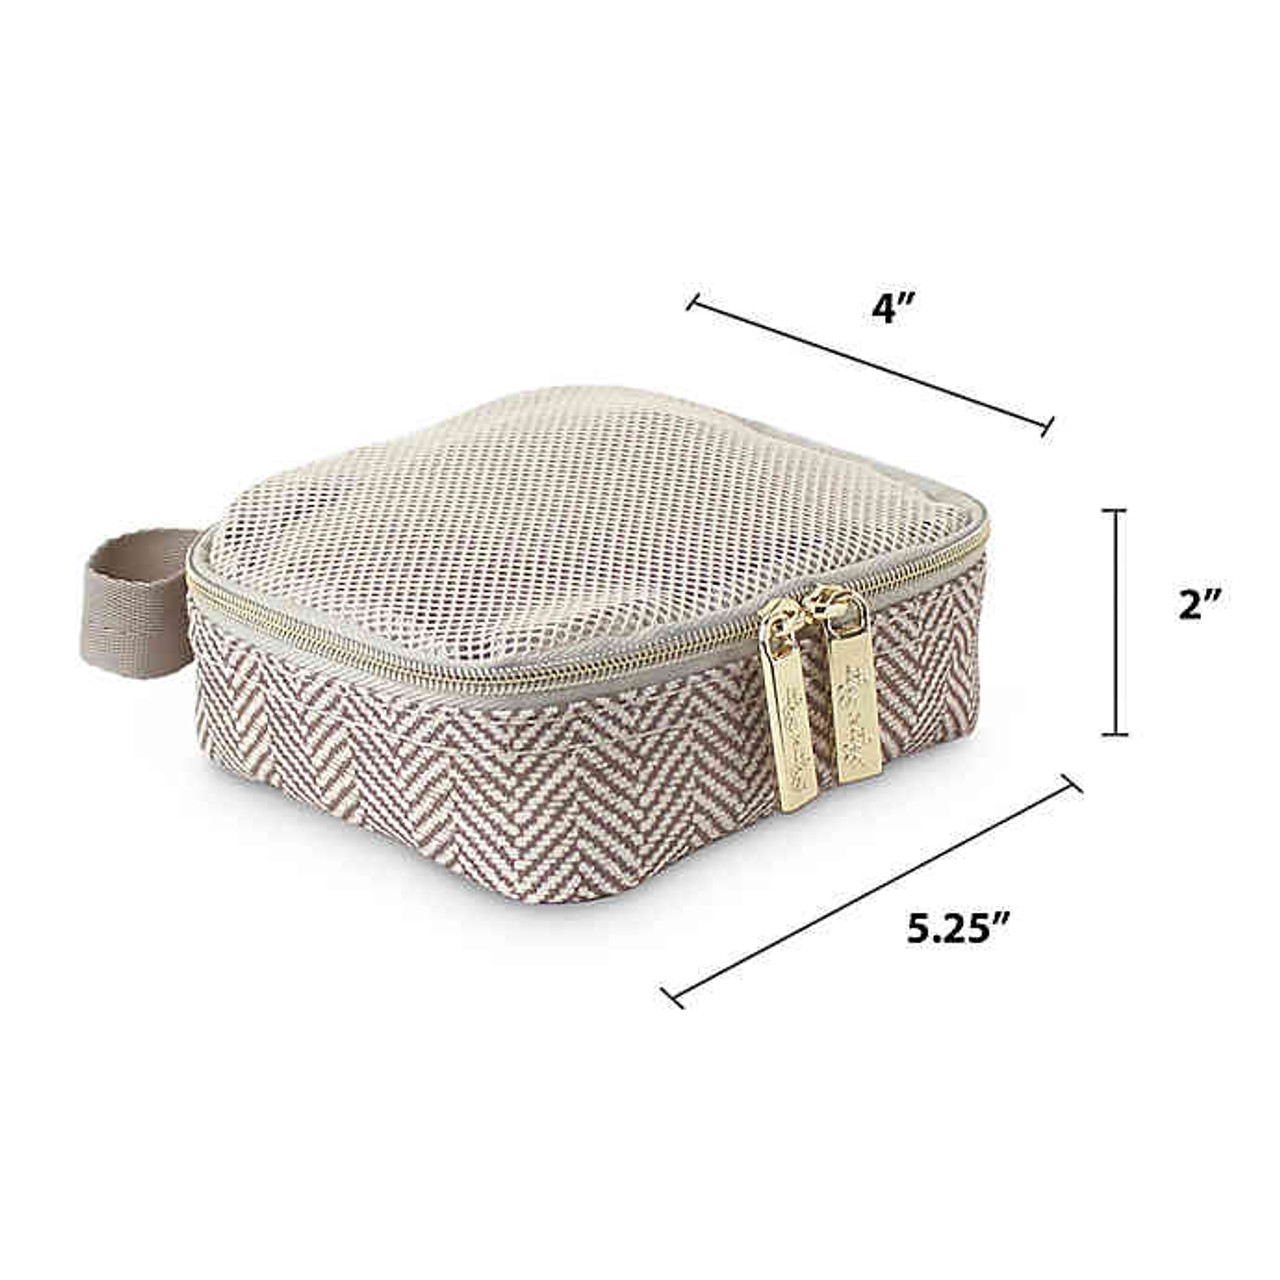 Taupe Packing Cubes by Itzy Ritzy